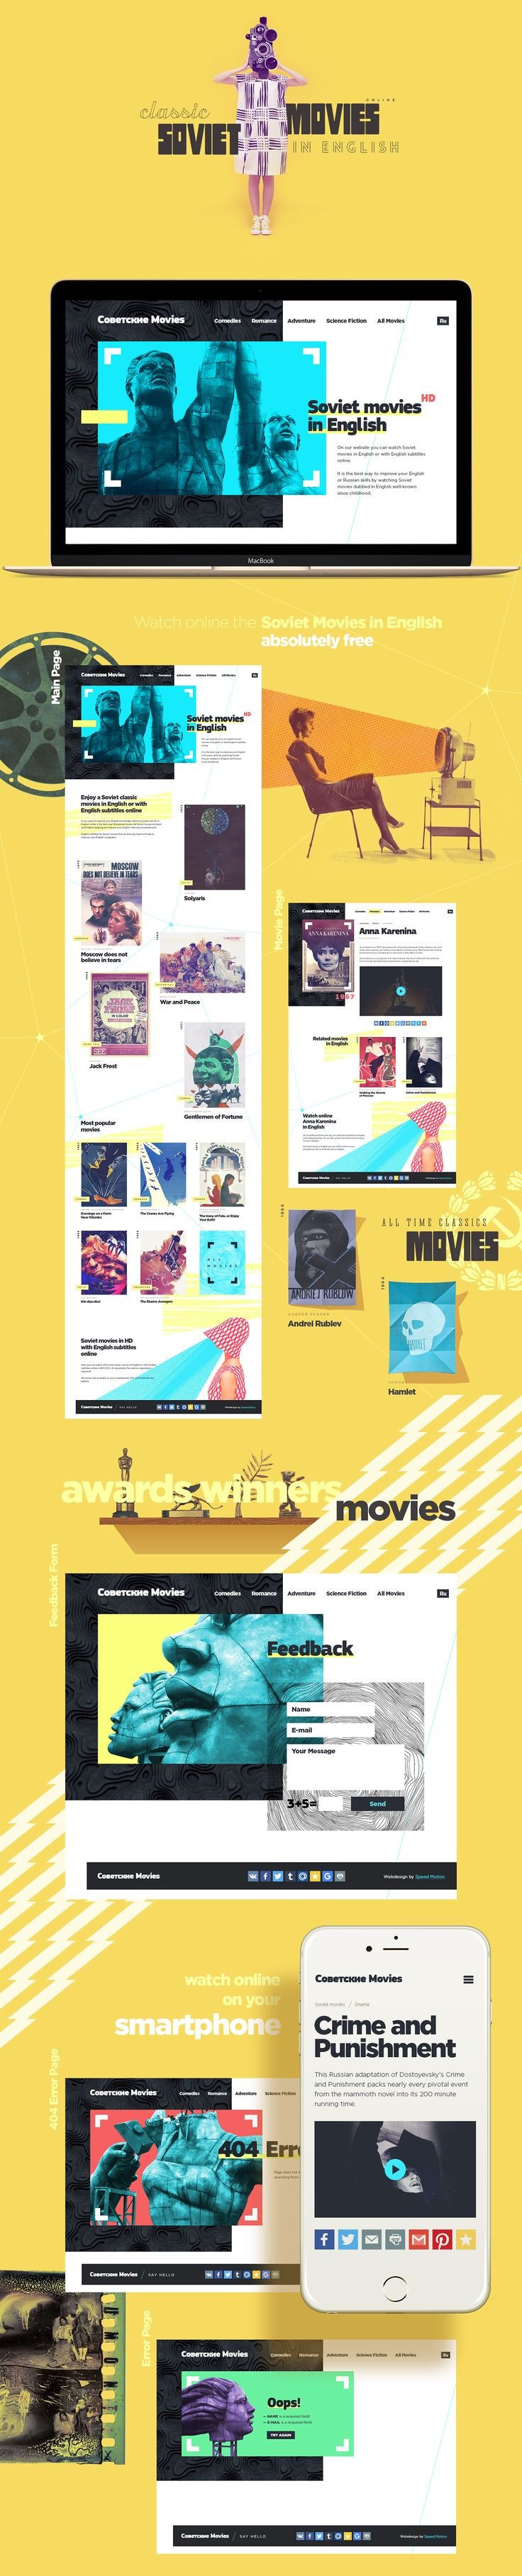 Soviet Movies in English online on Behance